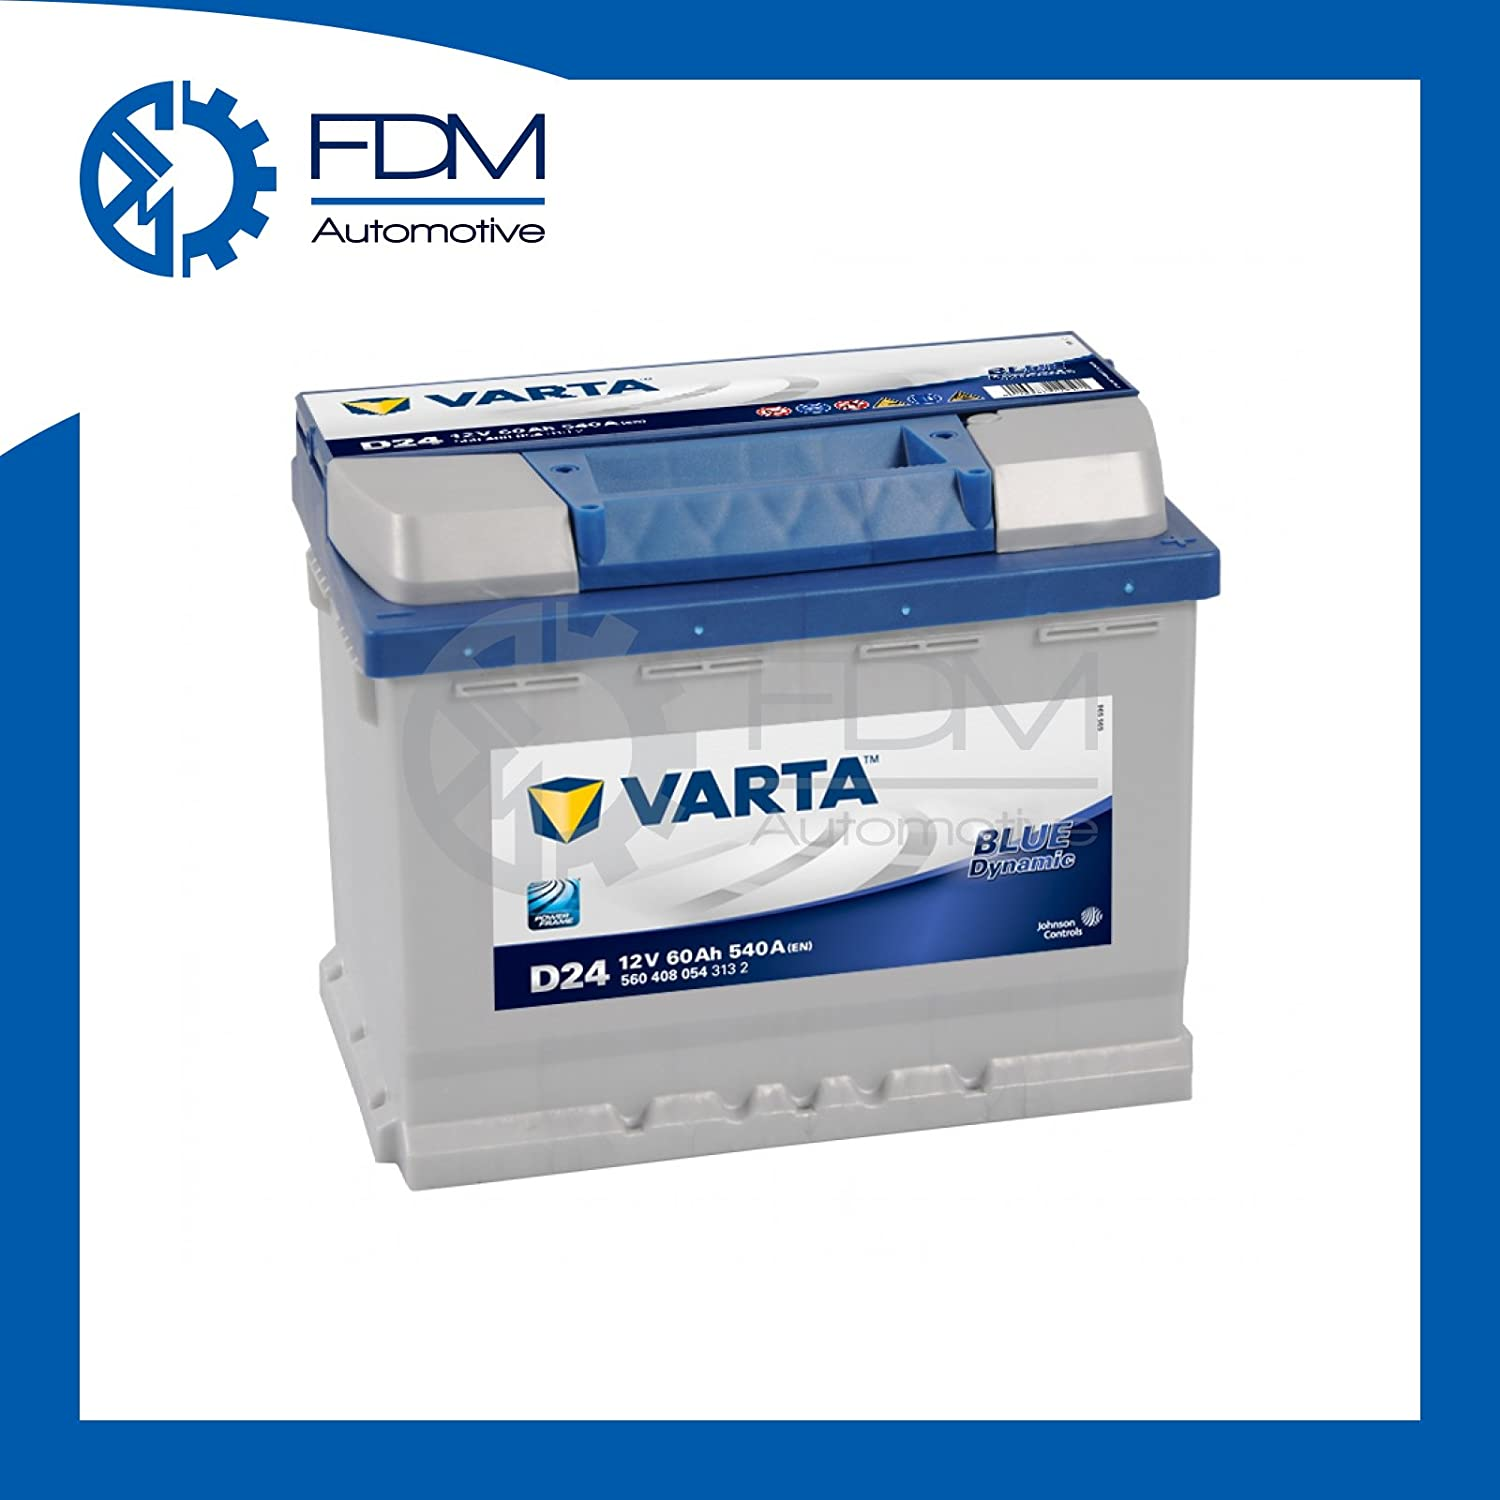 VARTA - 151.08.17 - D24 - Dynamic Blue / 60Ah car battery / battery - Maintenance